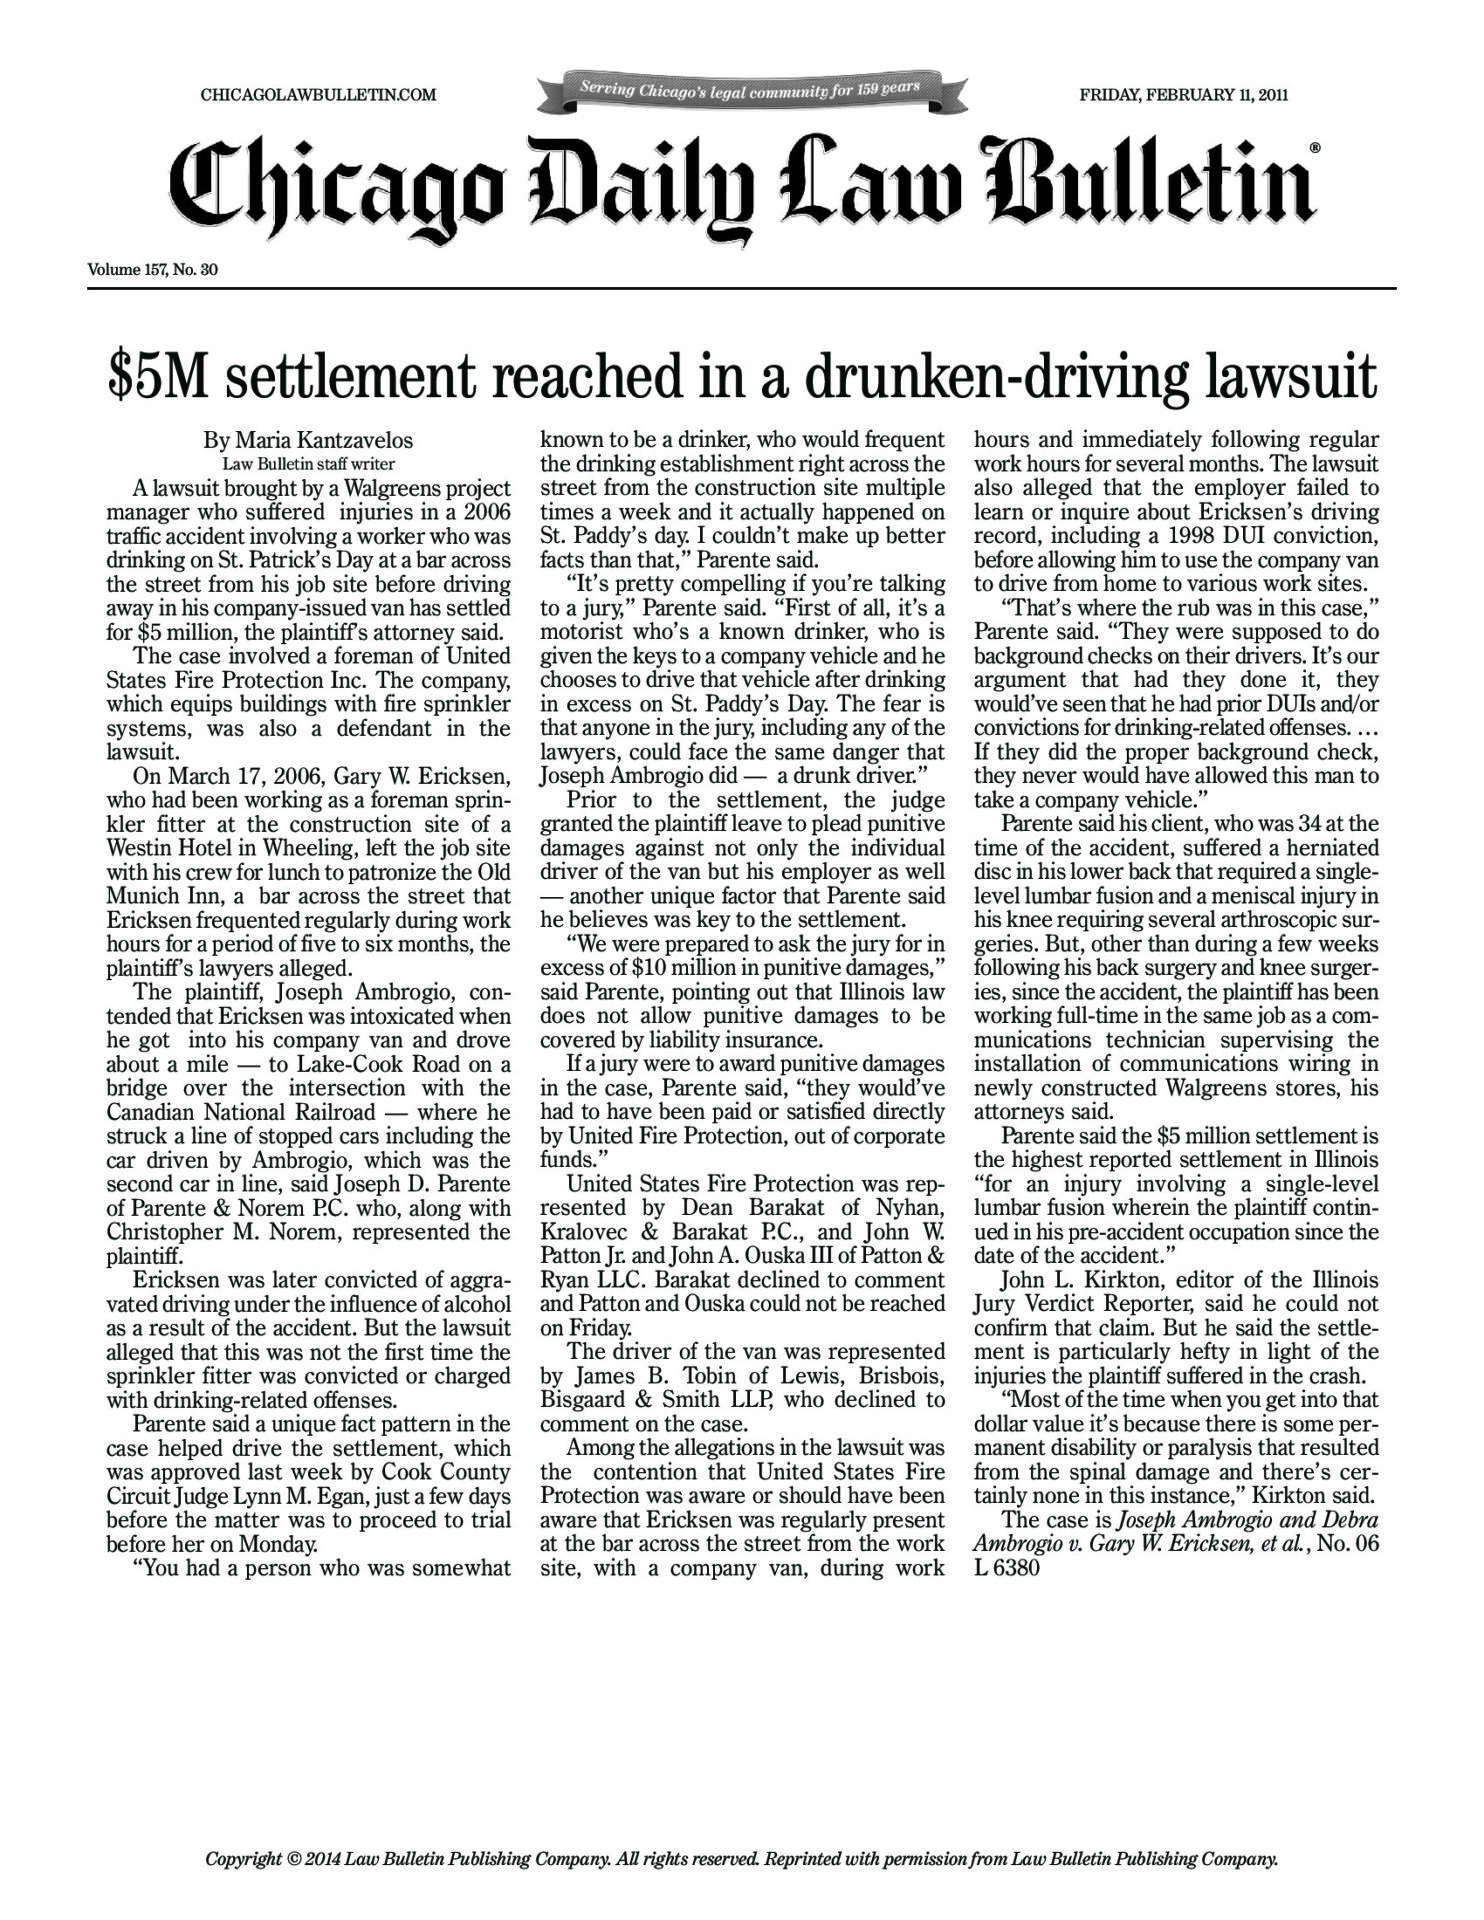 $5M settlement reached in a drunken-driving lawsuit - Law Offices of